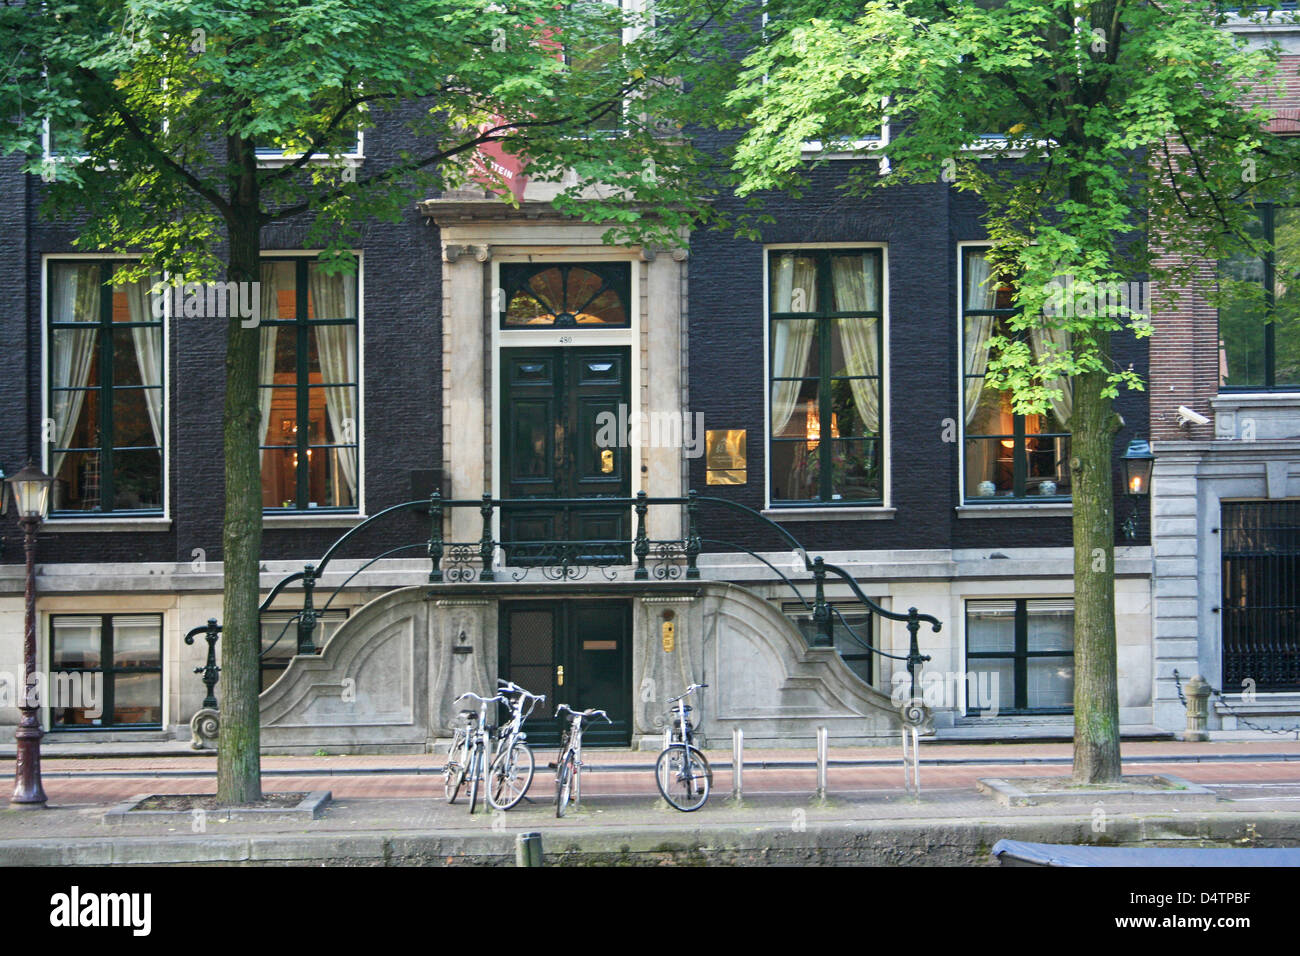 The Netherlands Holland Amsterdam Herengracht 480 Canal District Construction year 1670 Type of facade cornice - Stock Image